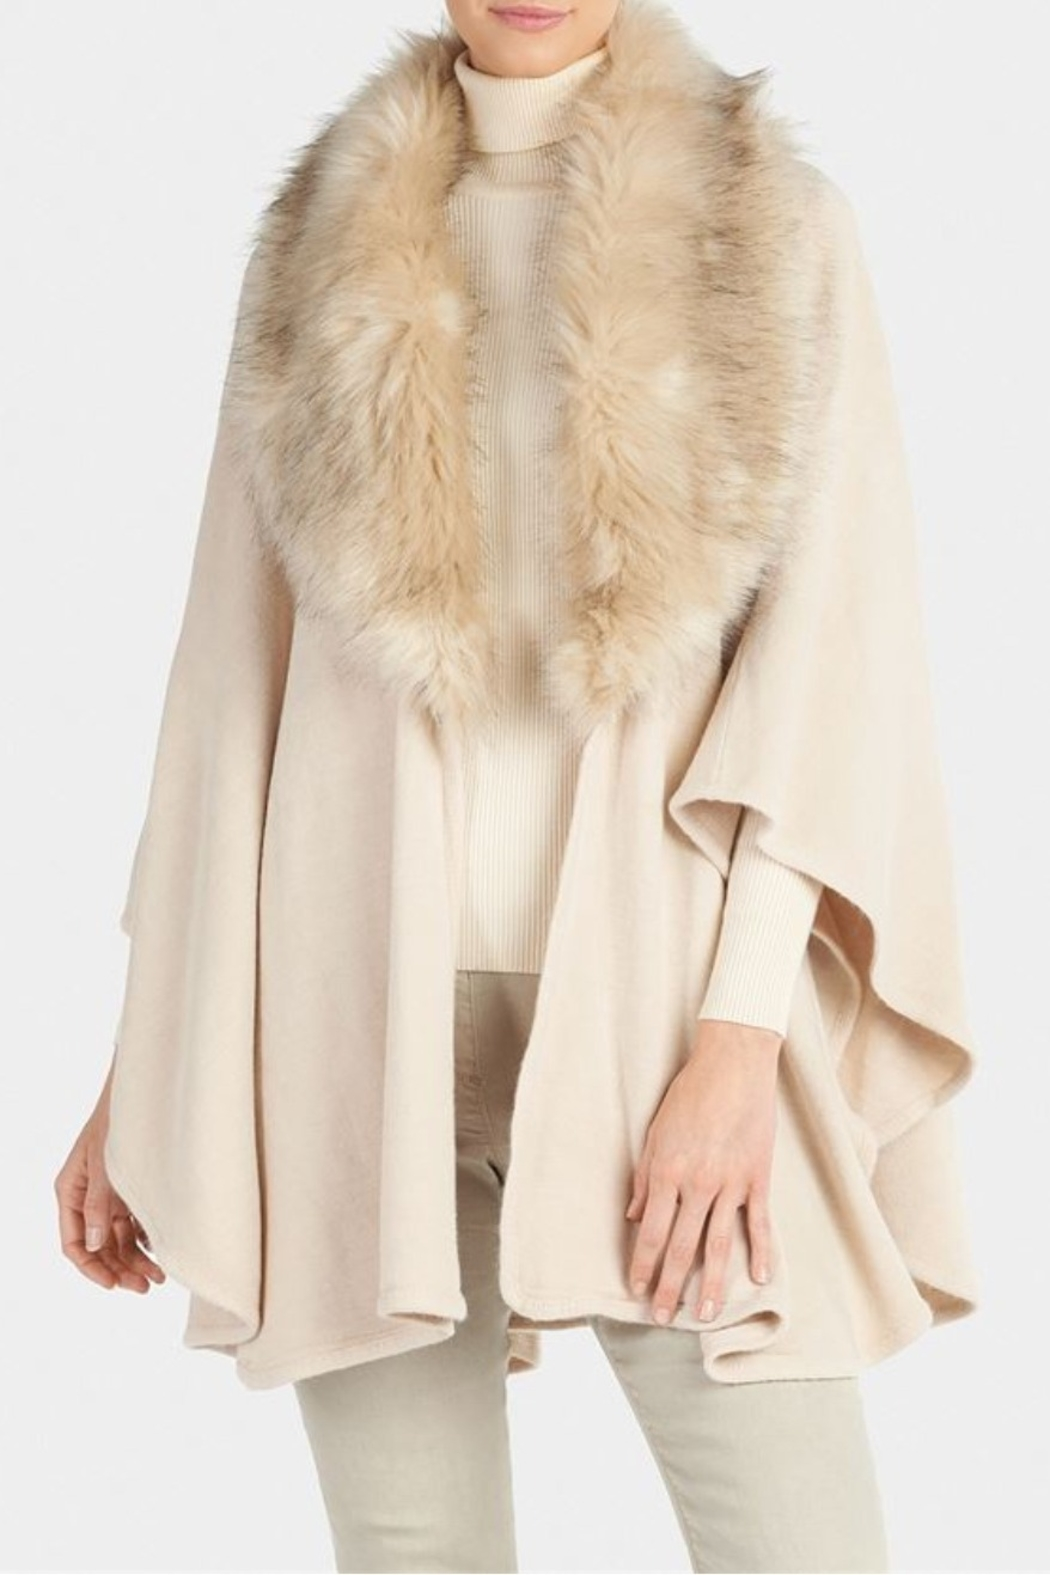 Coco + Carmen Quebec Faux Fur Ruana - Front Cropped Image